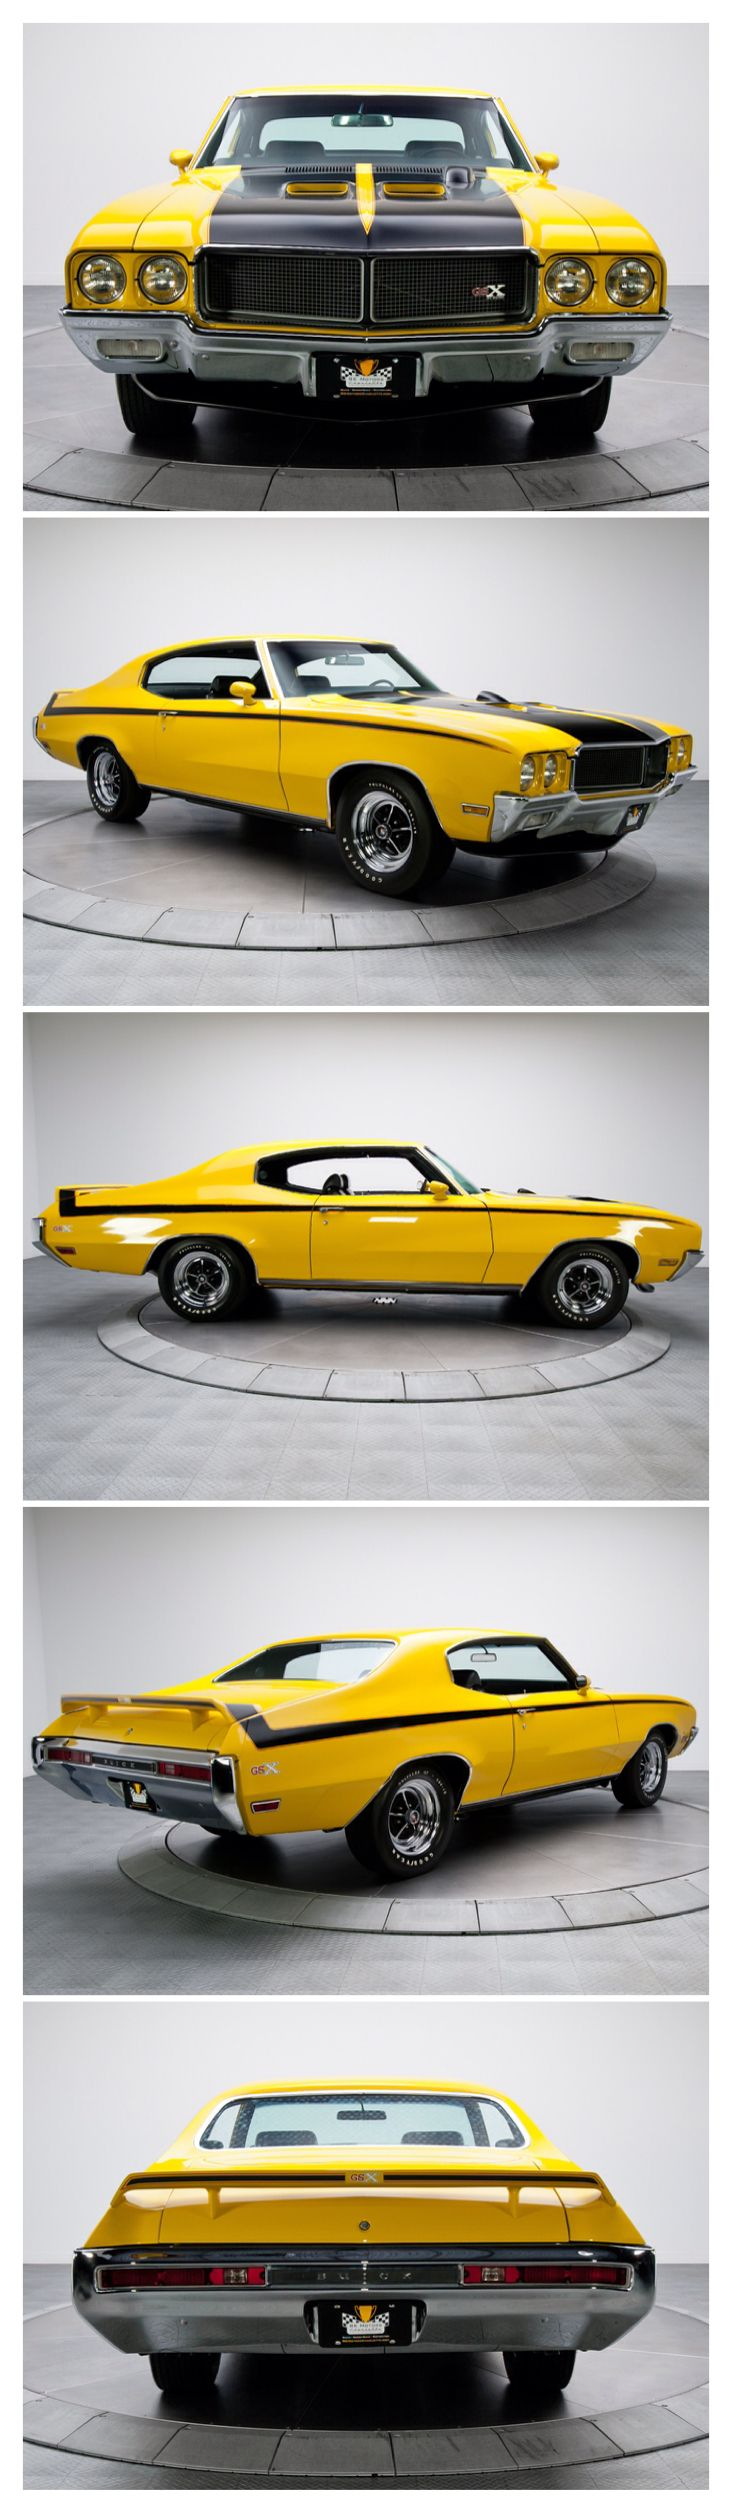 1970 Buick GSX...Re-pin brought to you by #LowCost Insuranceagents ...